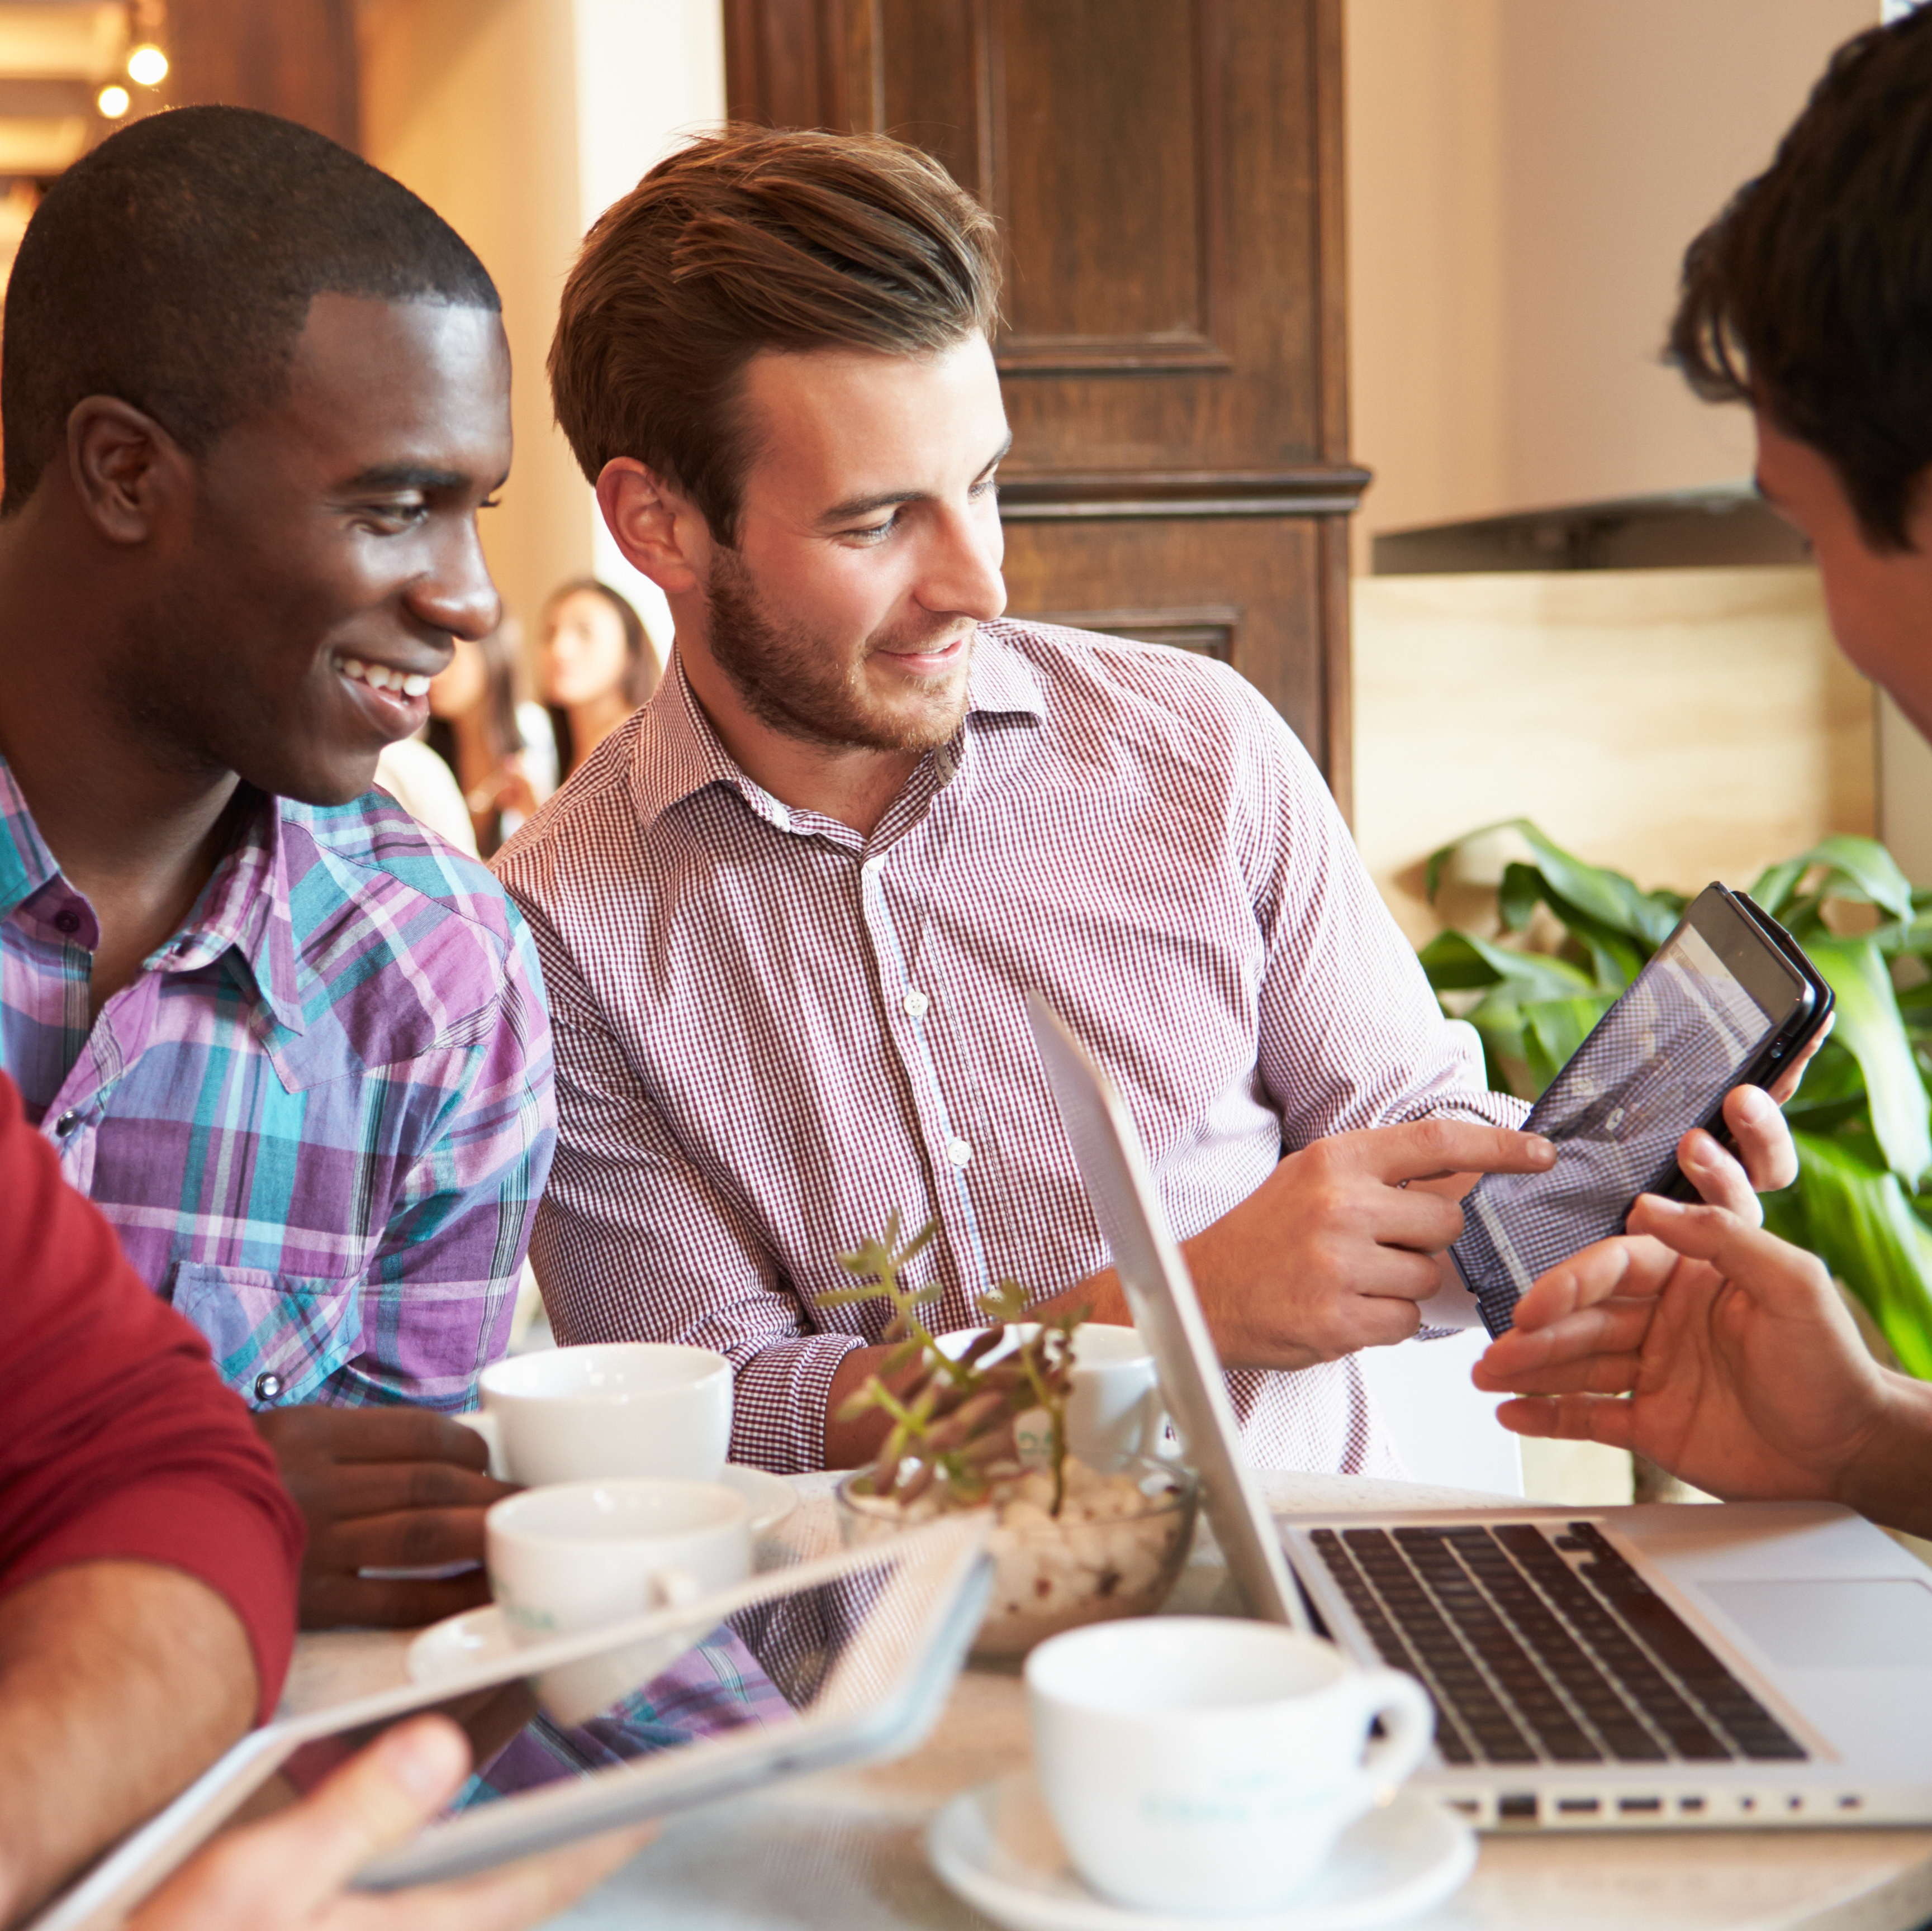 a group of young men laughing and enjoying each others company in a restaurant, looking at iPhones and iPads, computer information